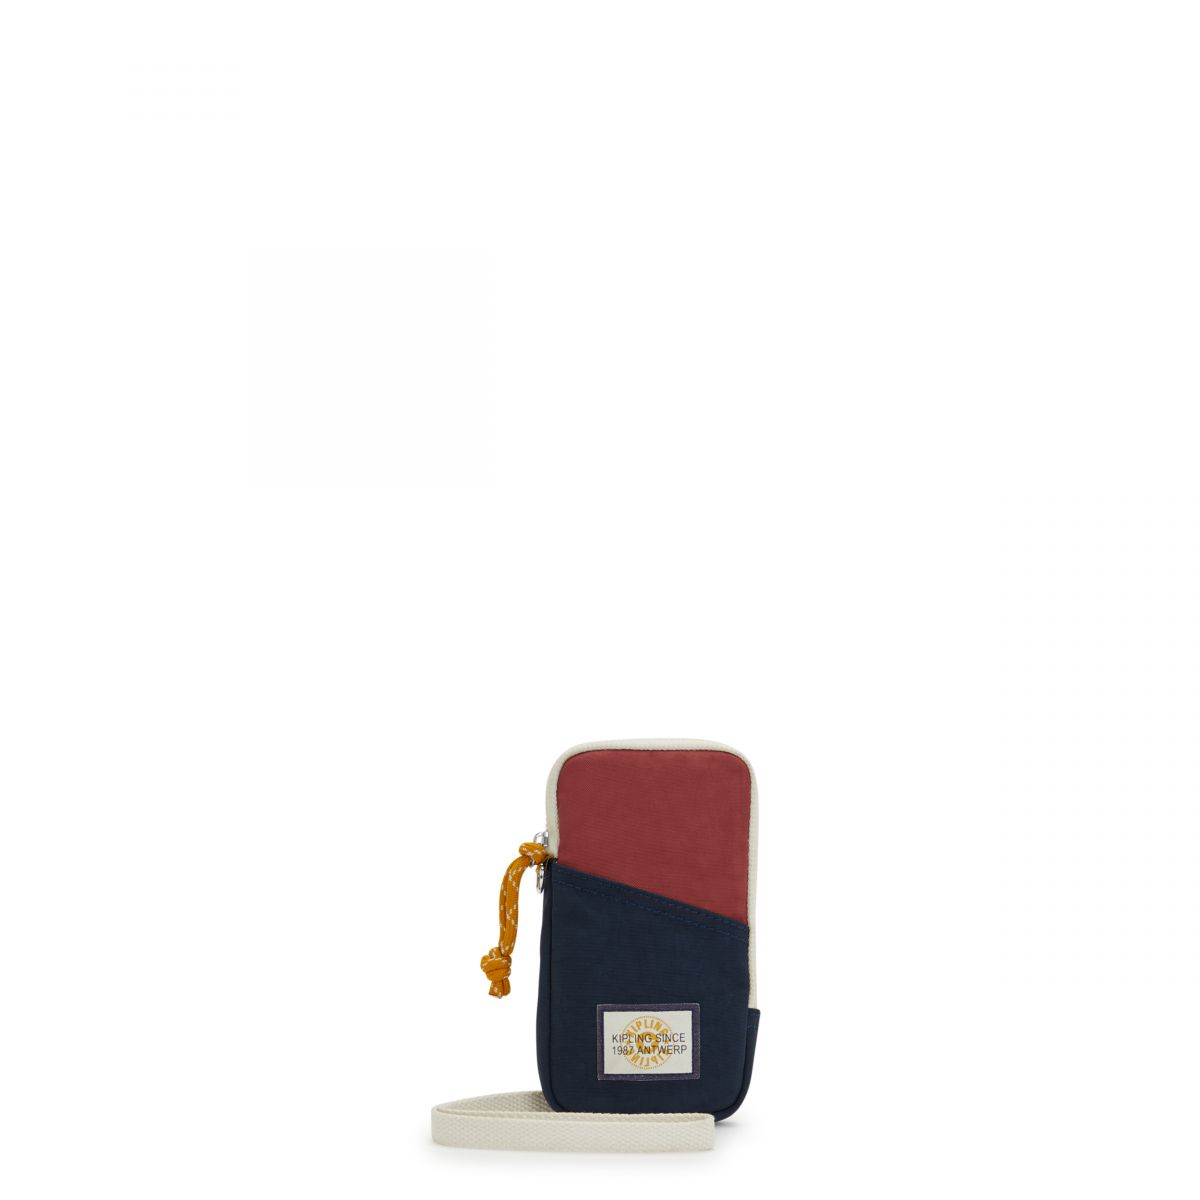 CLARK ACCESSORIES by Kipling - Front view